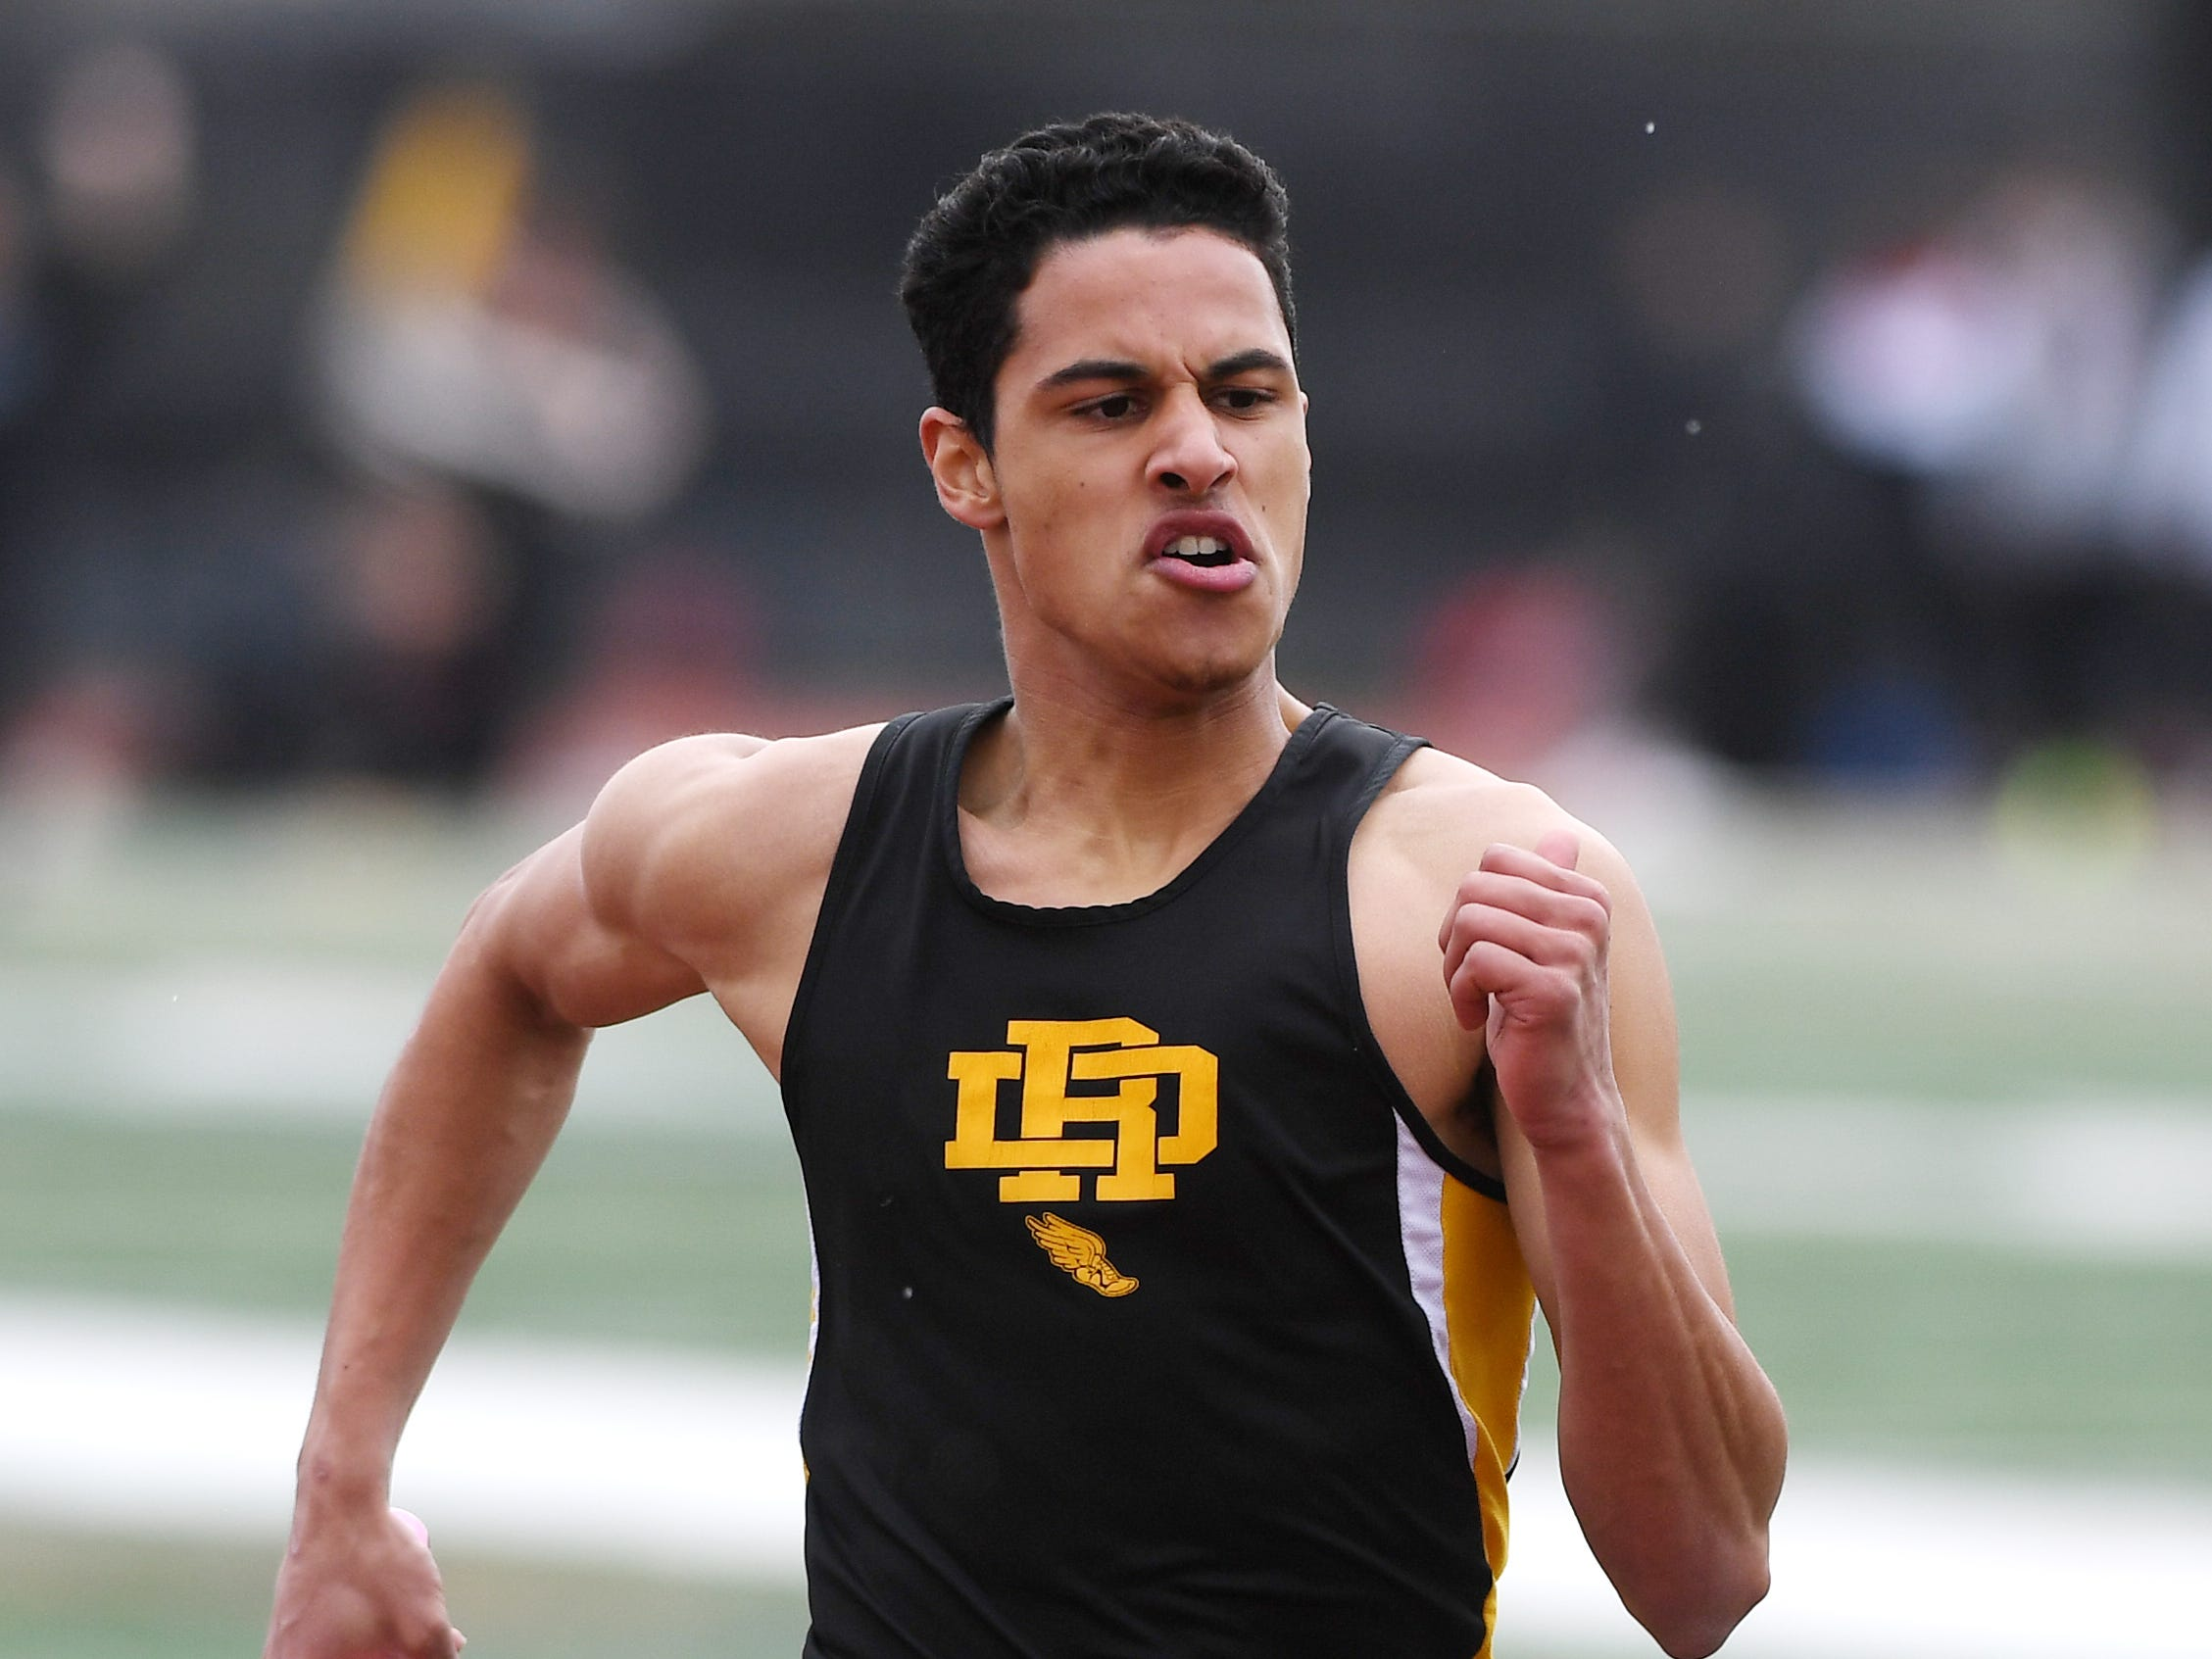 Bergen County Relays at River Dell H.S in Oradell on Friday, April 12, 2019. Andrew Sanchez, of River Dell, in the 800 Meter Relay.